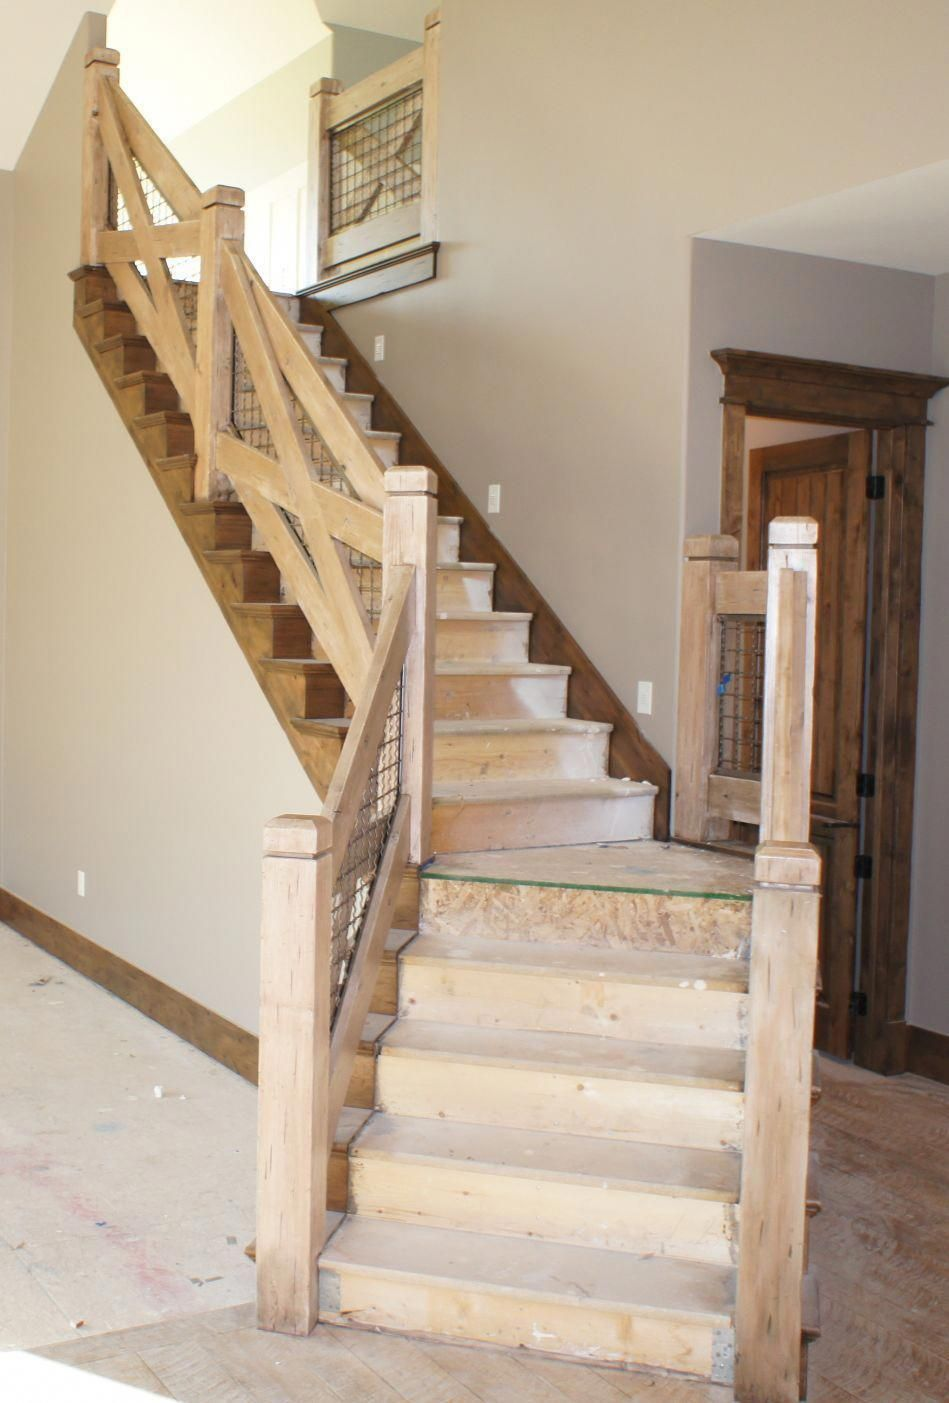 lowcost stair railing ideas 14465 wooddeckcost